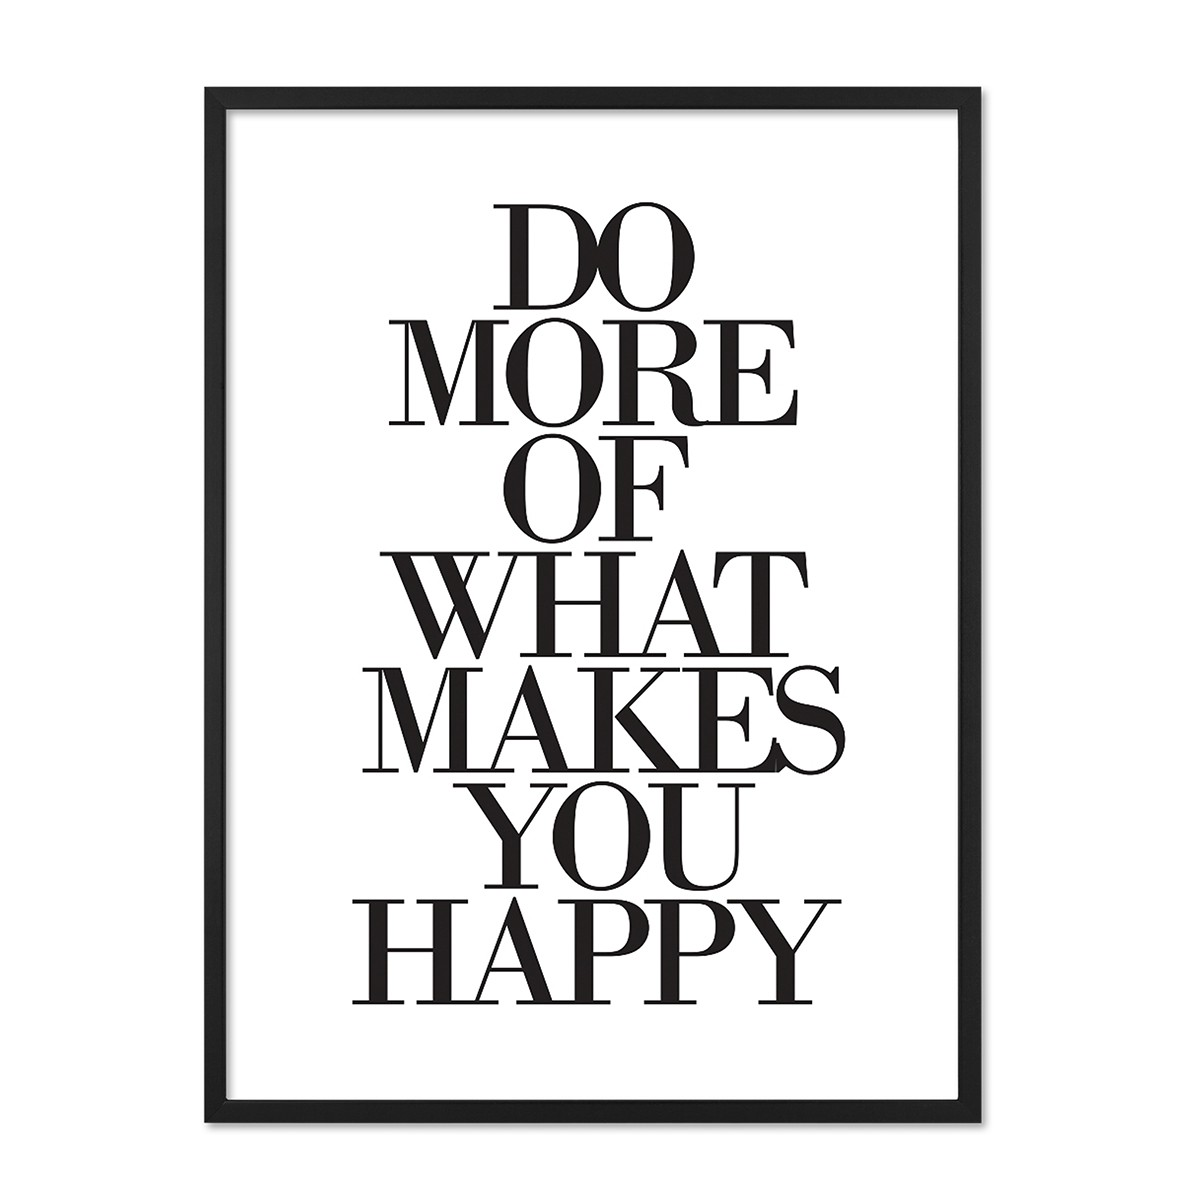 design poster mit bilderrahmen schwarz 39 what makes you happy 39 30x40 cm schwarz weiss typographie. Black Bedroom Furniture Sets. Home Design Ideas